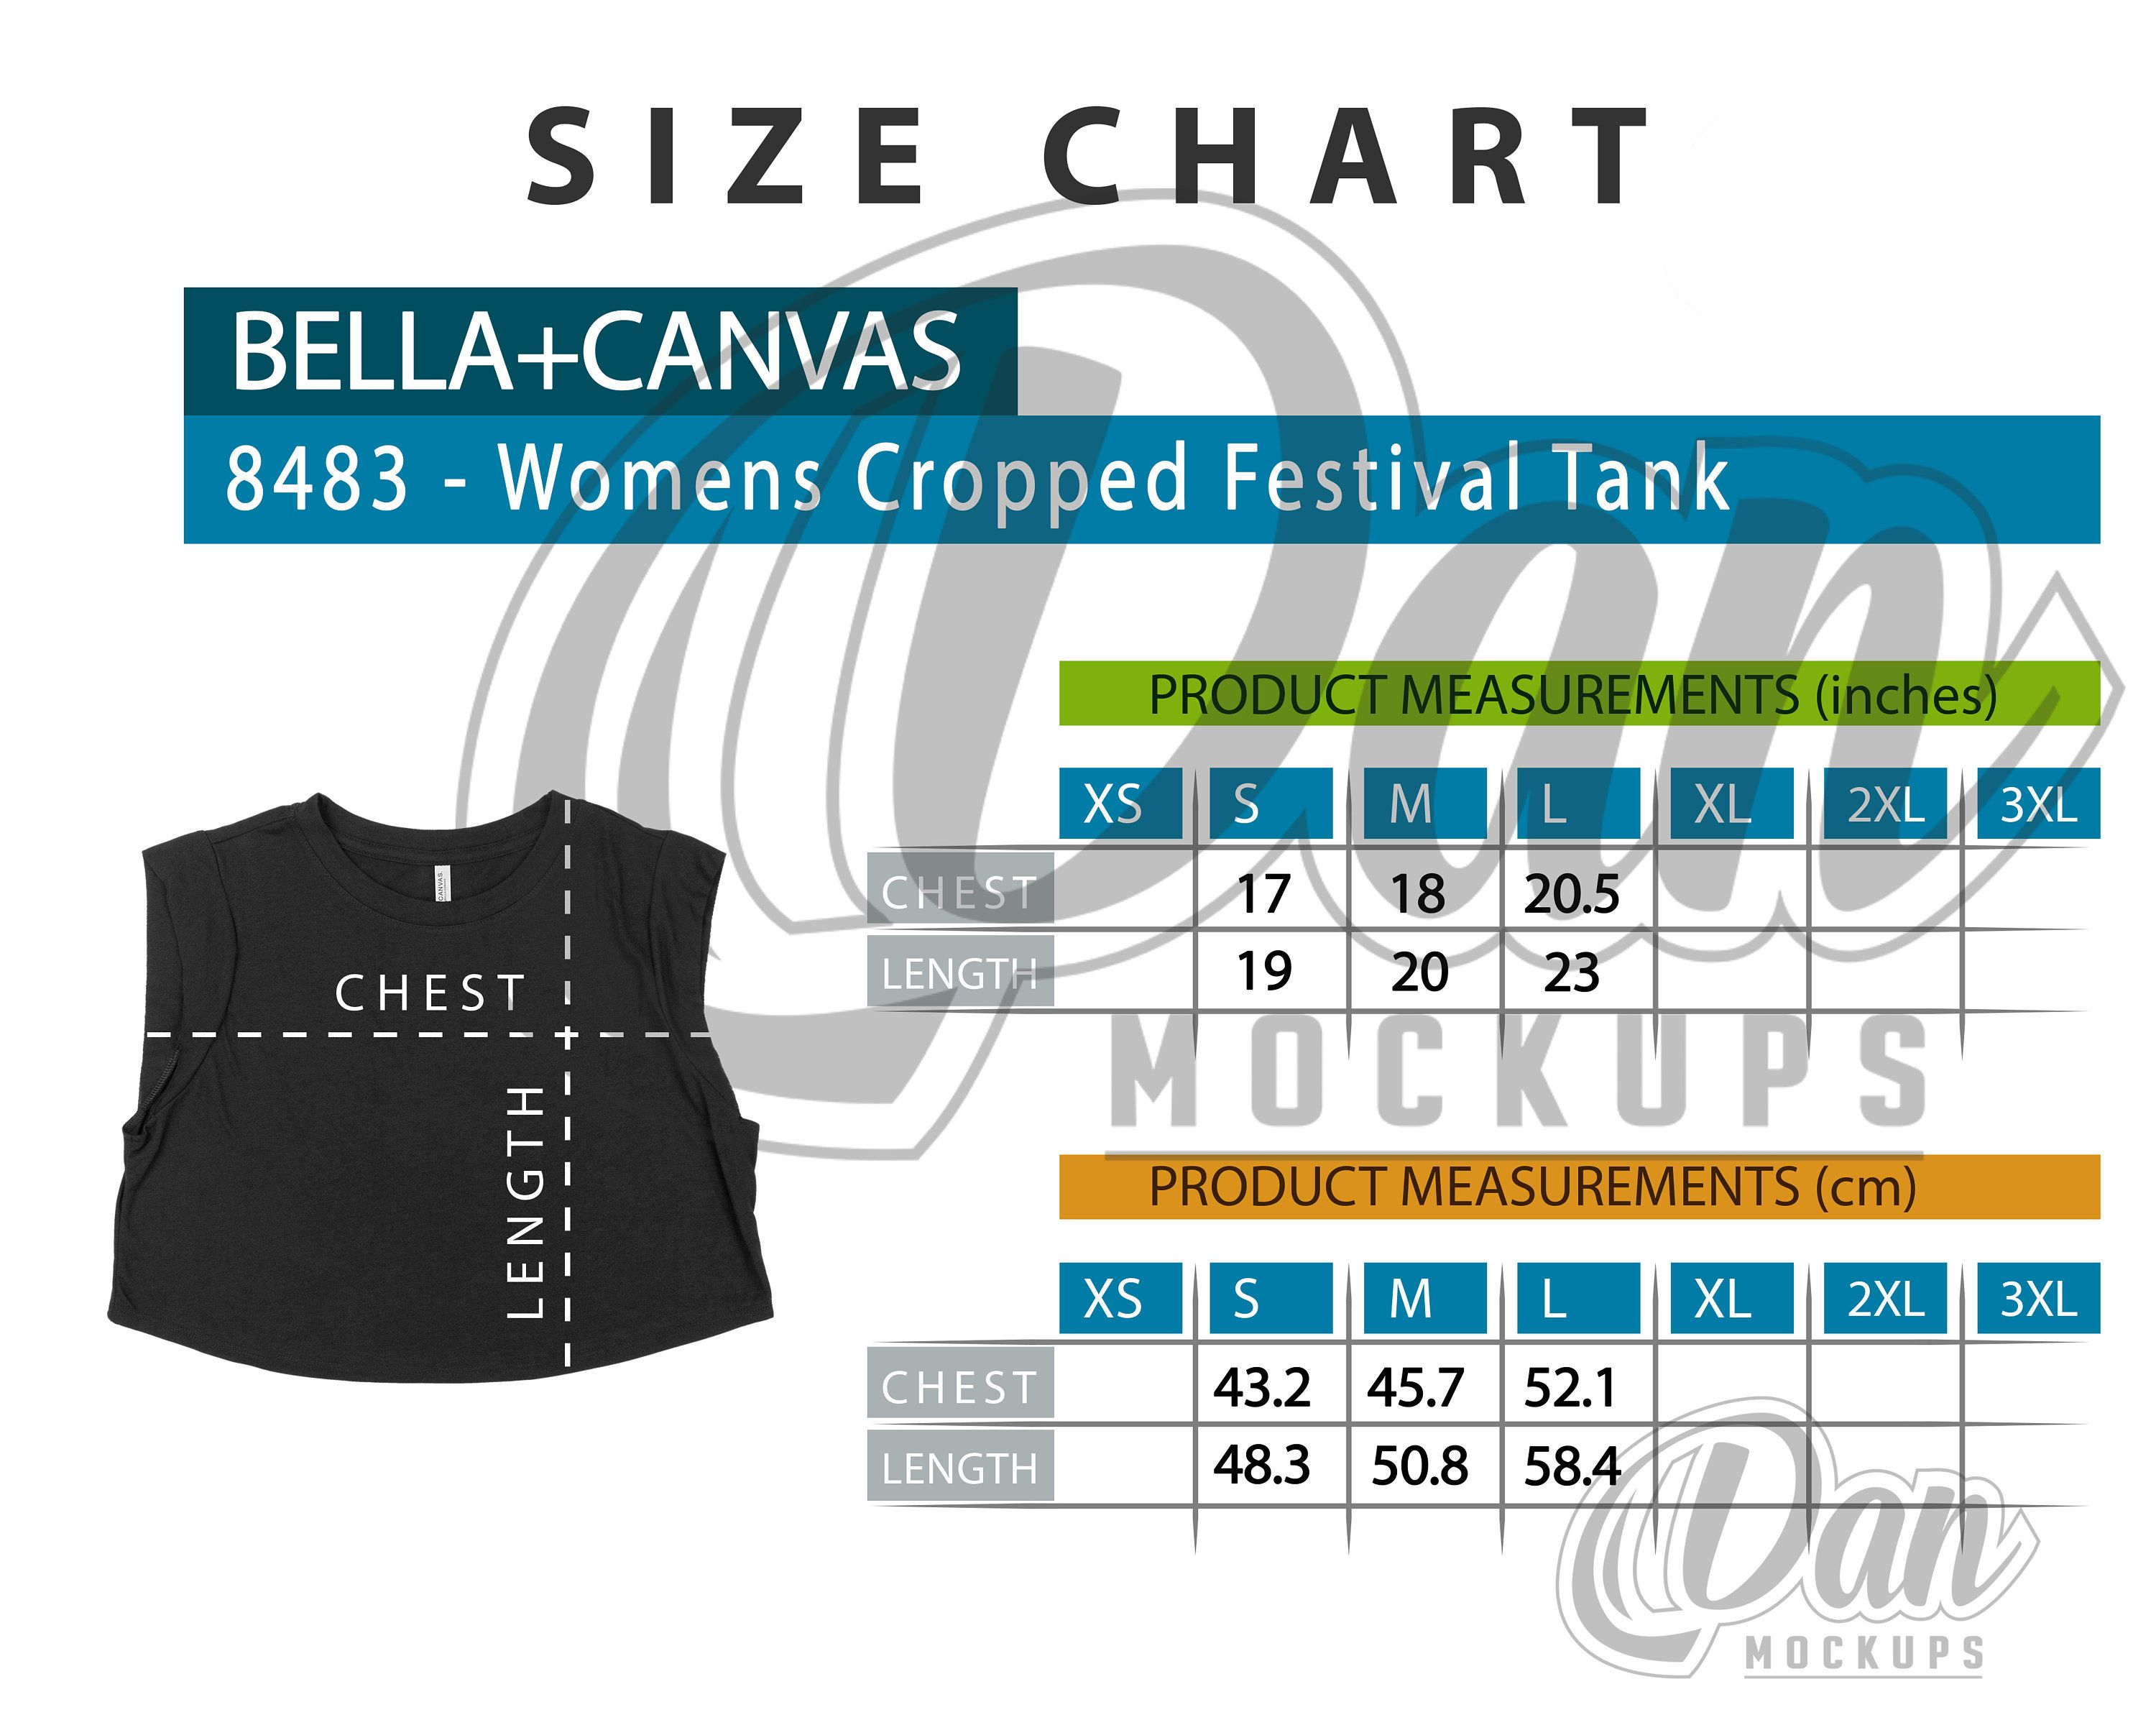 Size Chart Bella Canvas 8483 Women S Cropped Festival Tank Tee Measures Shirt Measures Tee Size Chart Shirt Size By D In 2020 Size Chart Chart Tee Comfort Colors